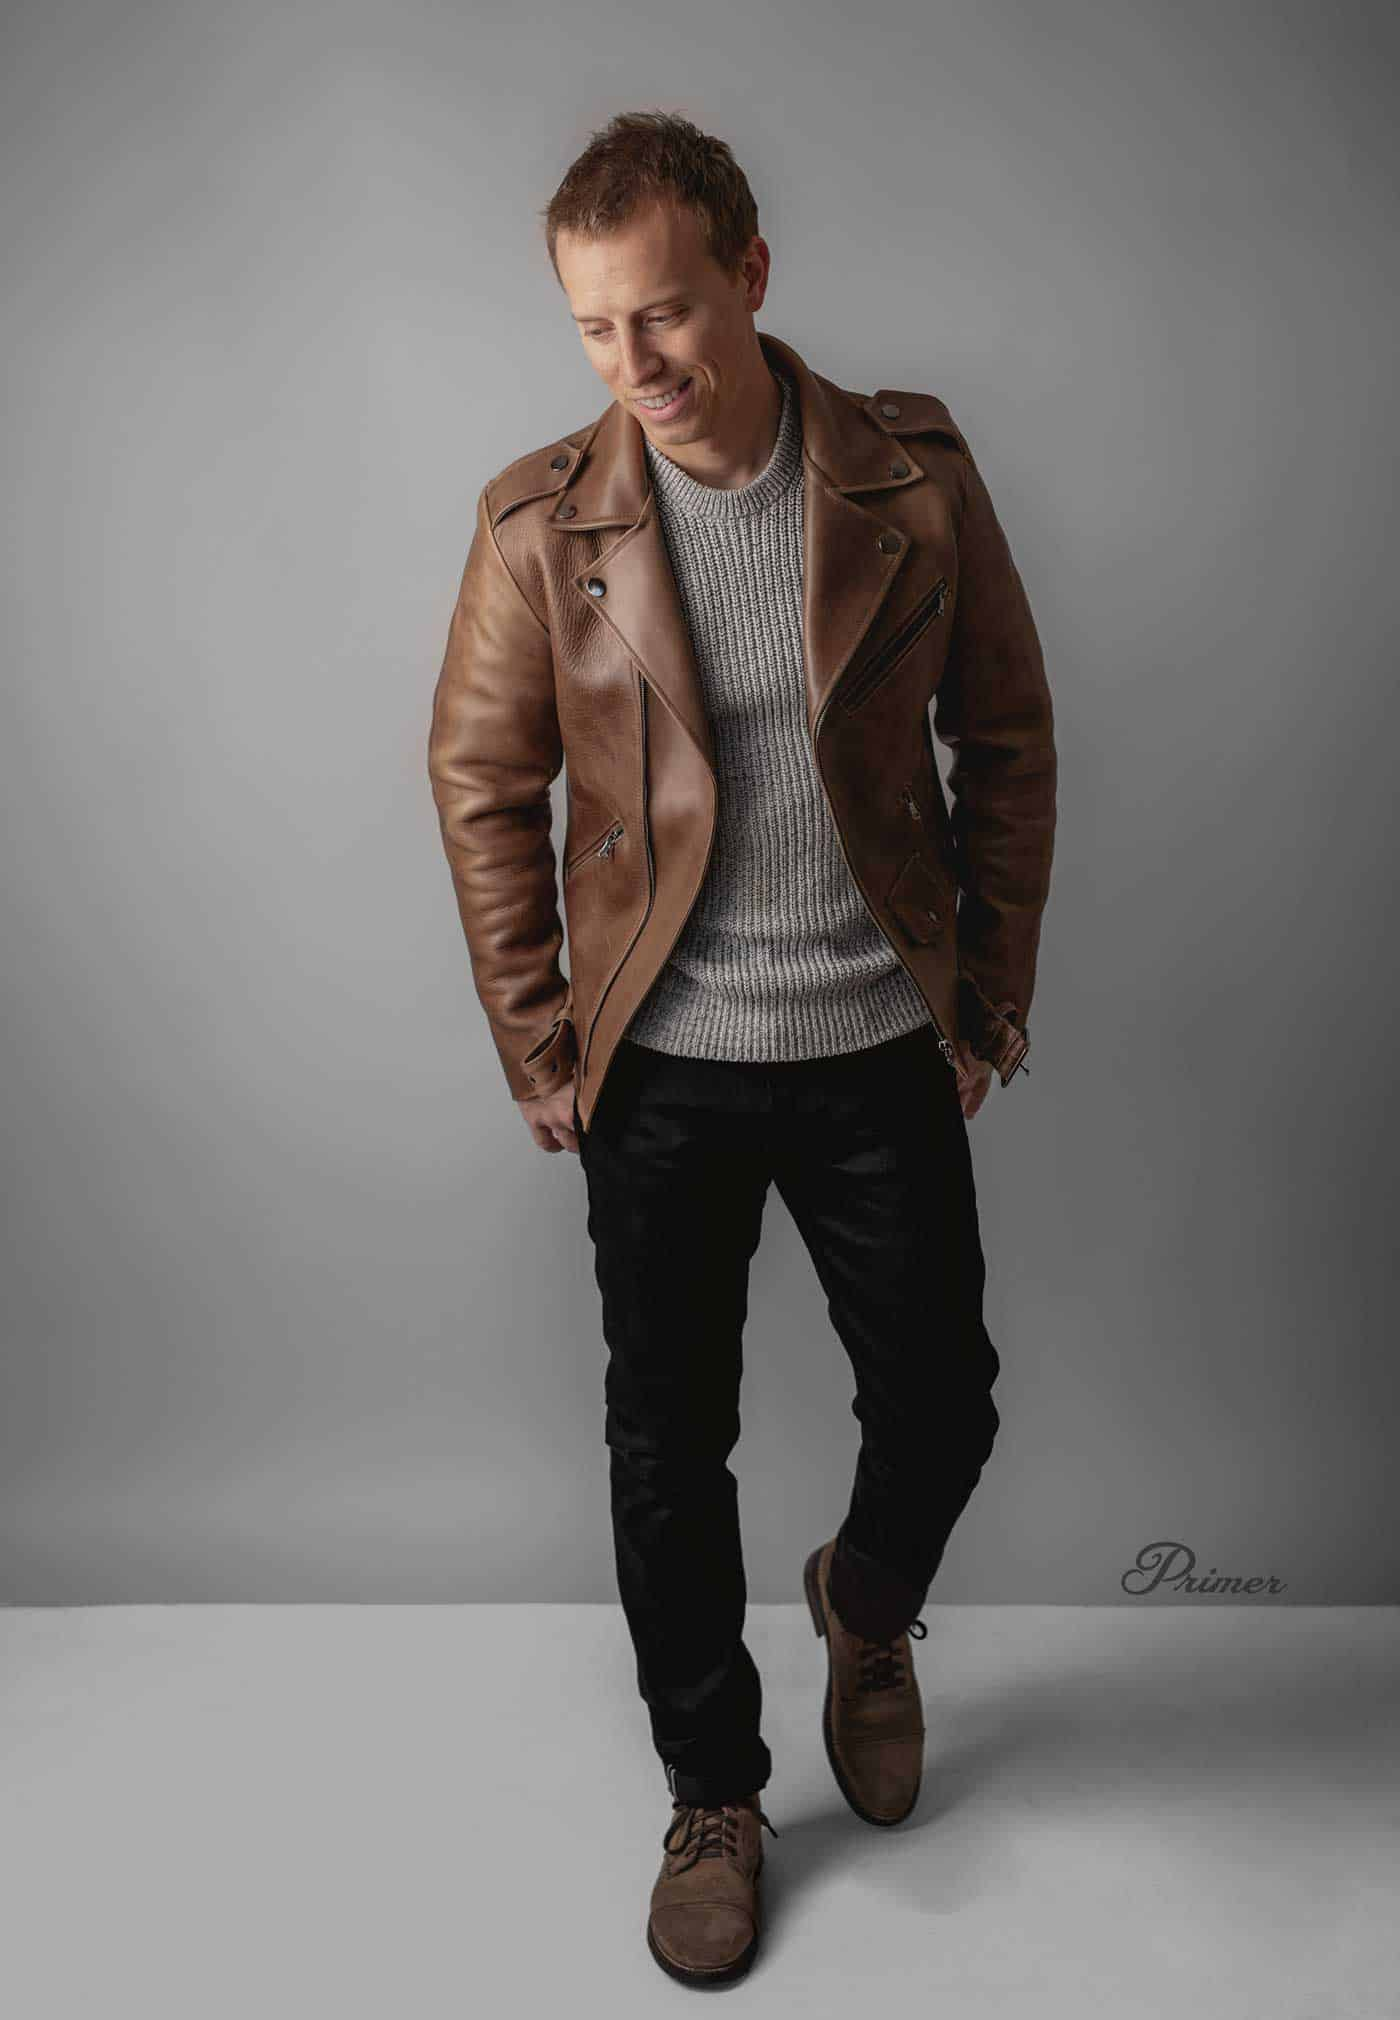 brown leather jacket men outfit inspiration gray sweater black jeans